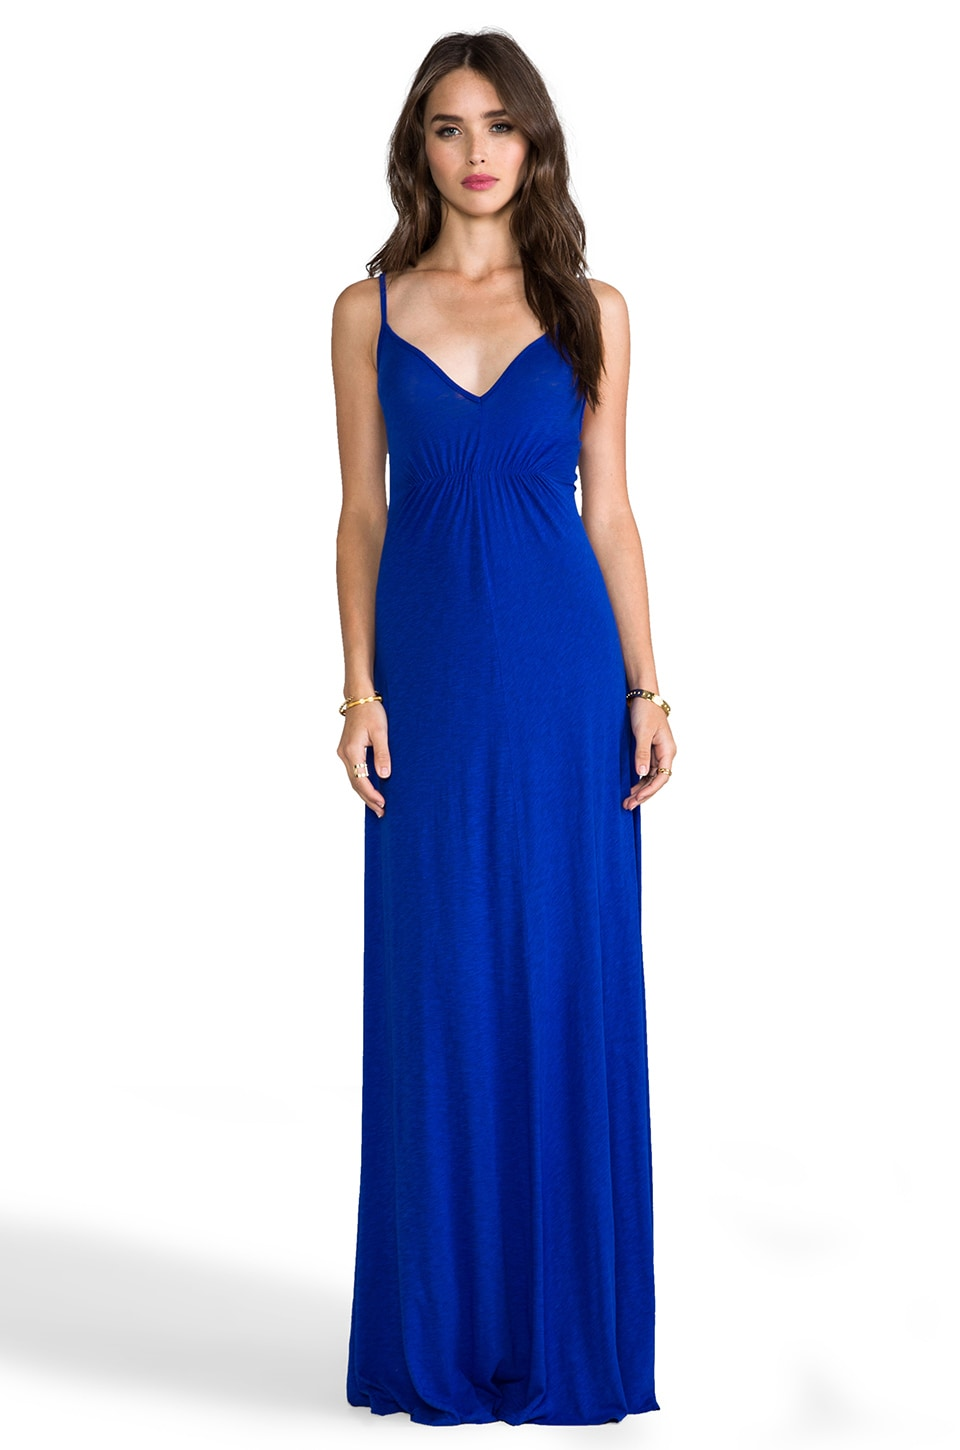 LA Made Cami Maxi Dress in Midnight Glow